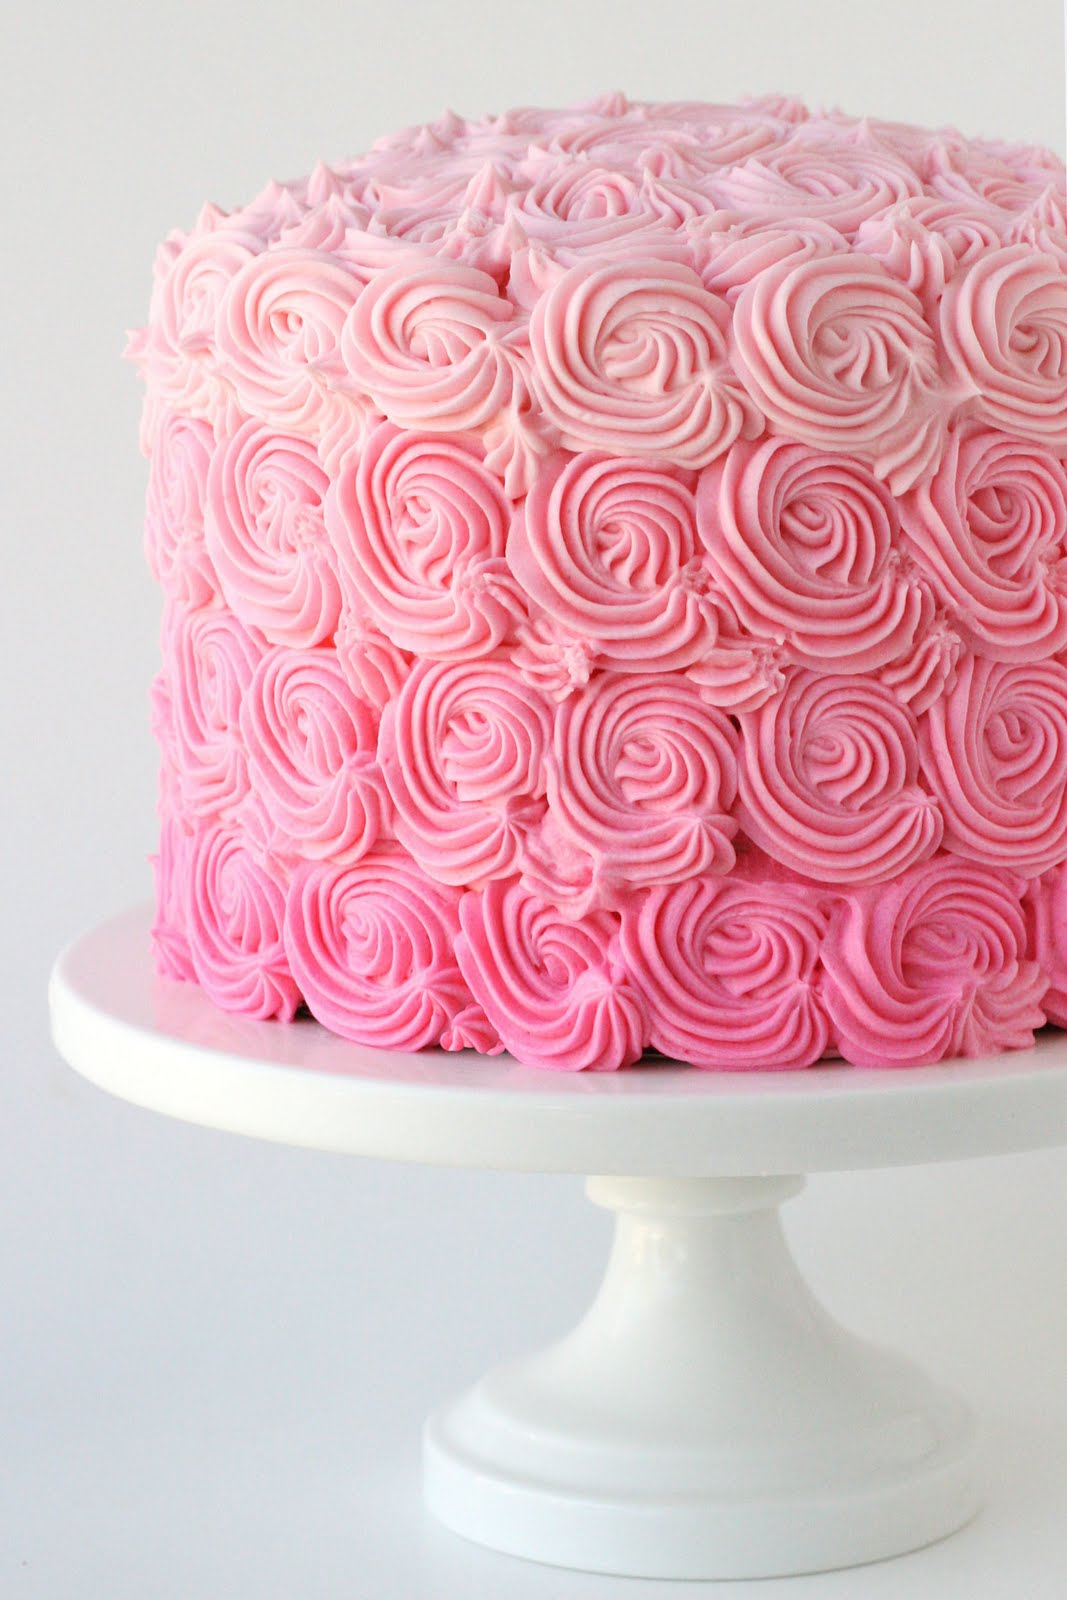 Pink Birthday Cake Decoration Ideas : lamb & blonde: Wedding Wednesday: Pink Cakes